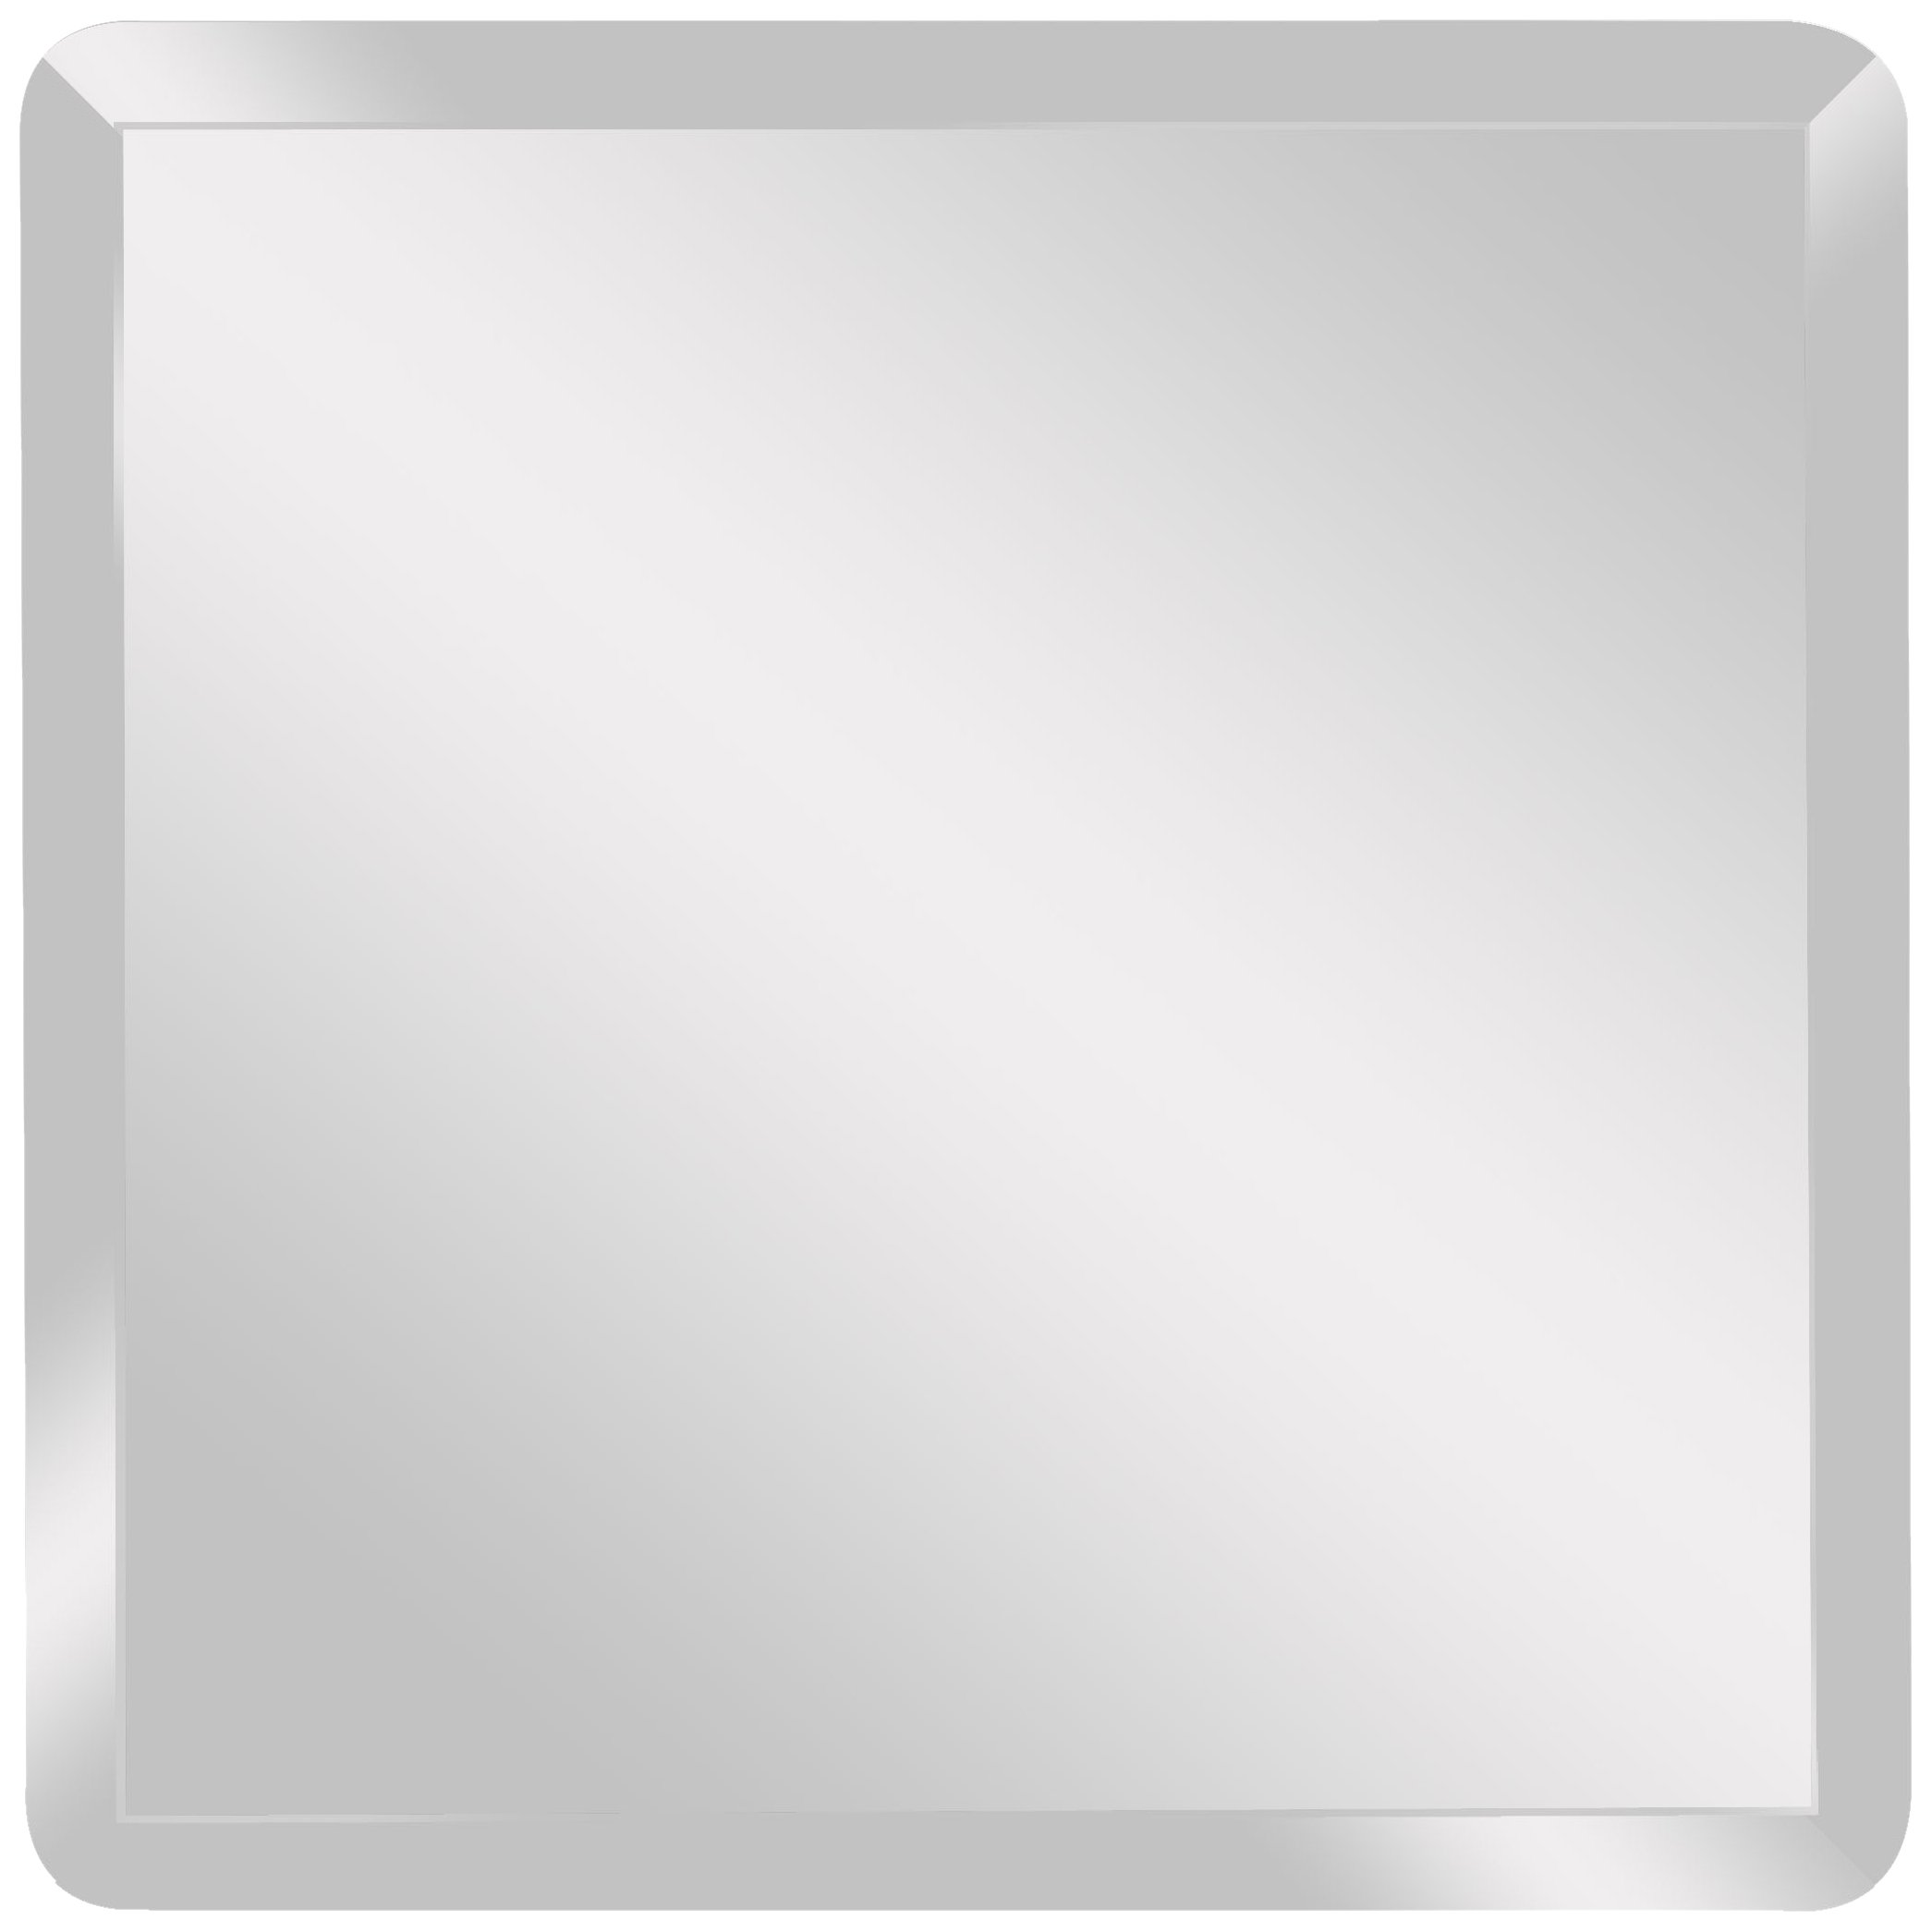 Spancraft Glass Square Beveled Mirror, 36'' x 36''